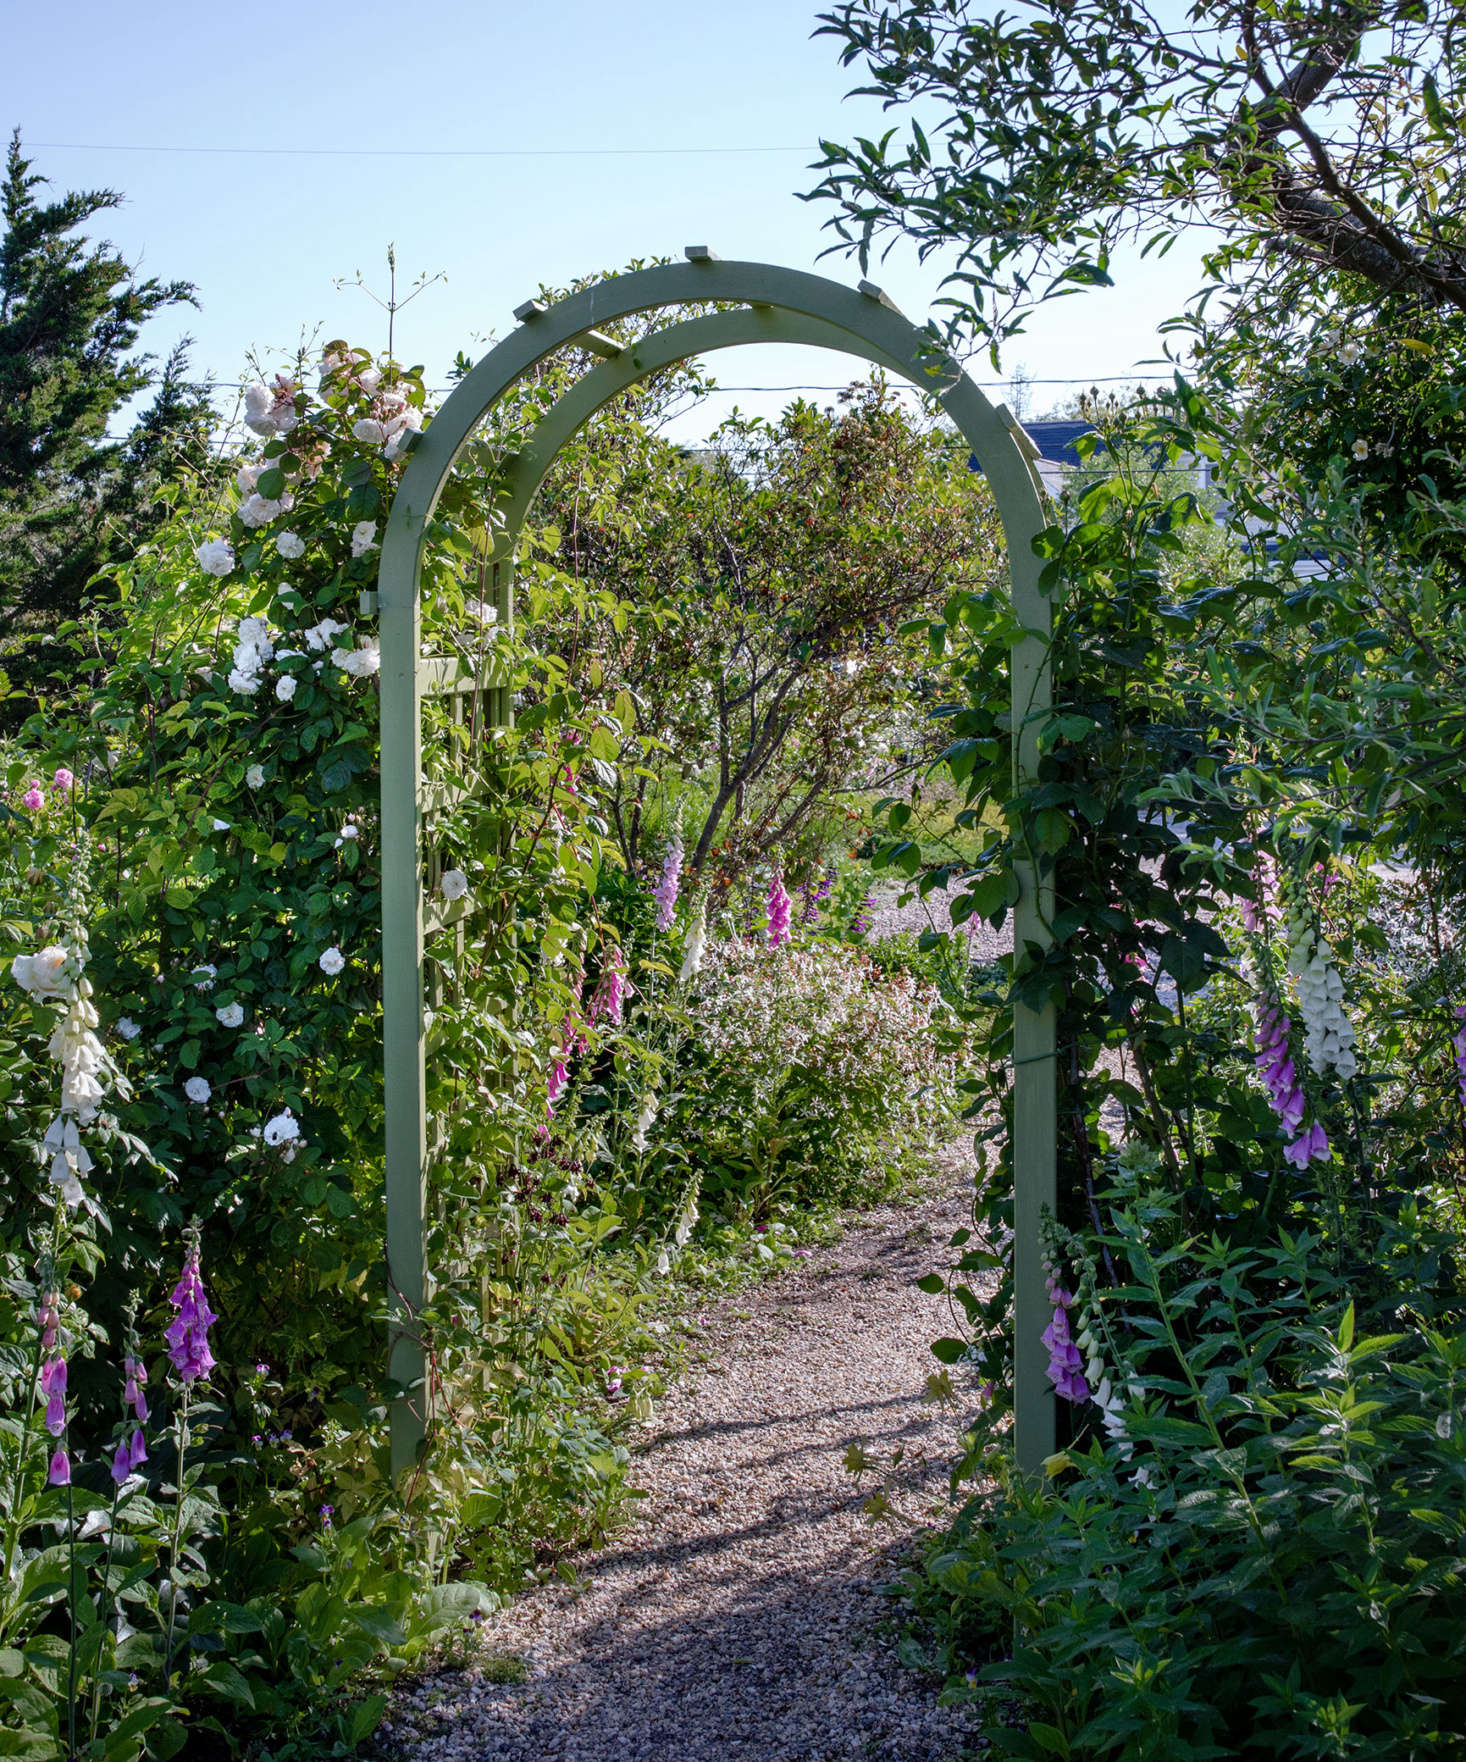 A rose-covered arch—painted in the same shade of green as the doors and trim on the cottages—forms a transition between the front gardens surrounding the driveway and the gardens around the main residence cottage.